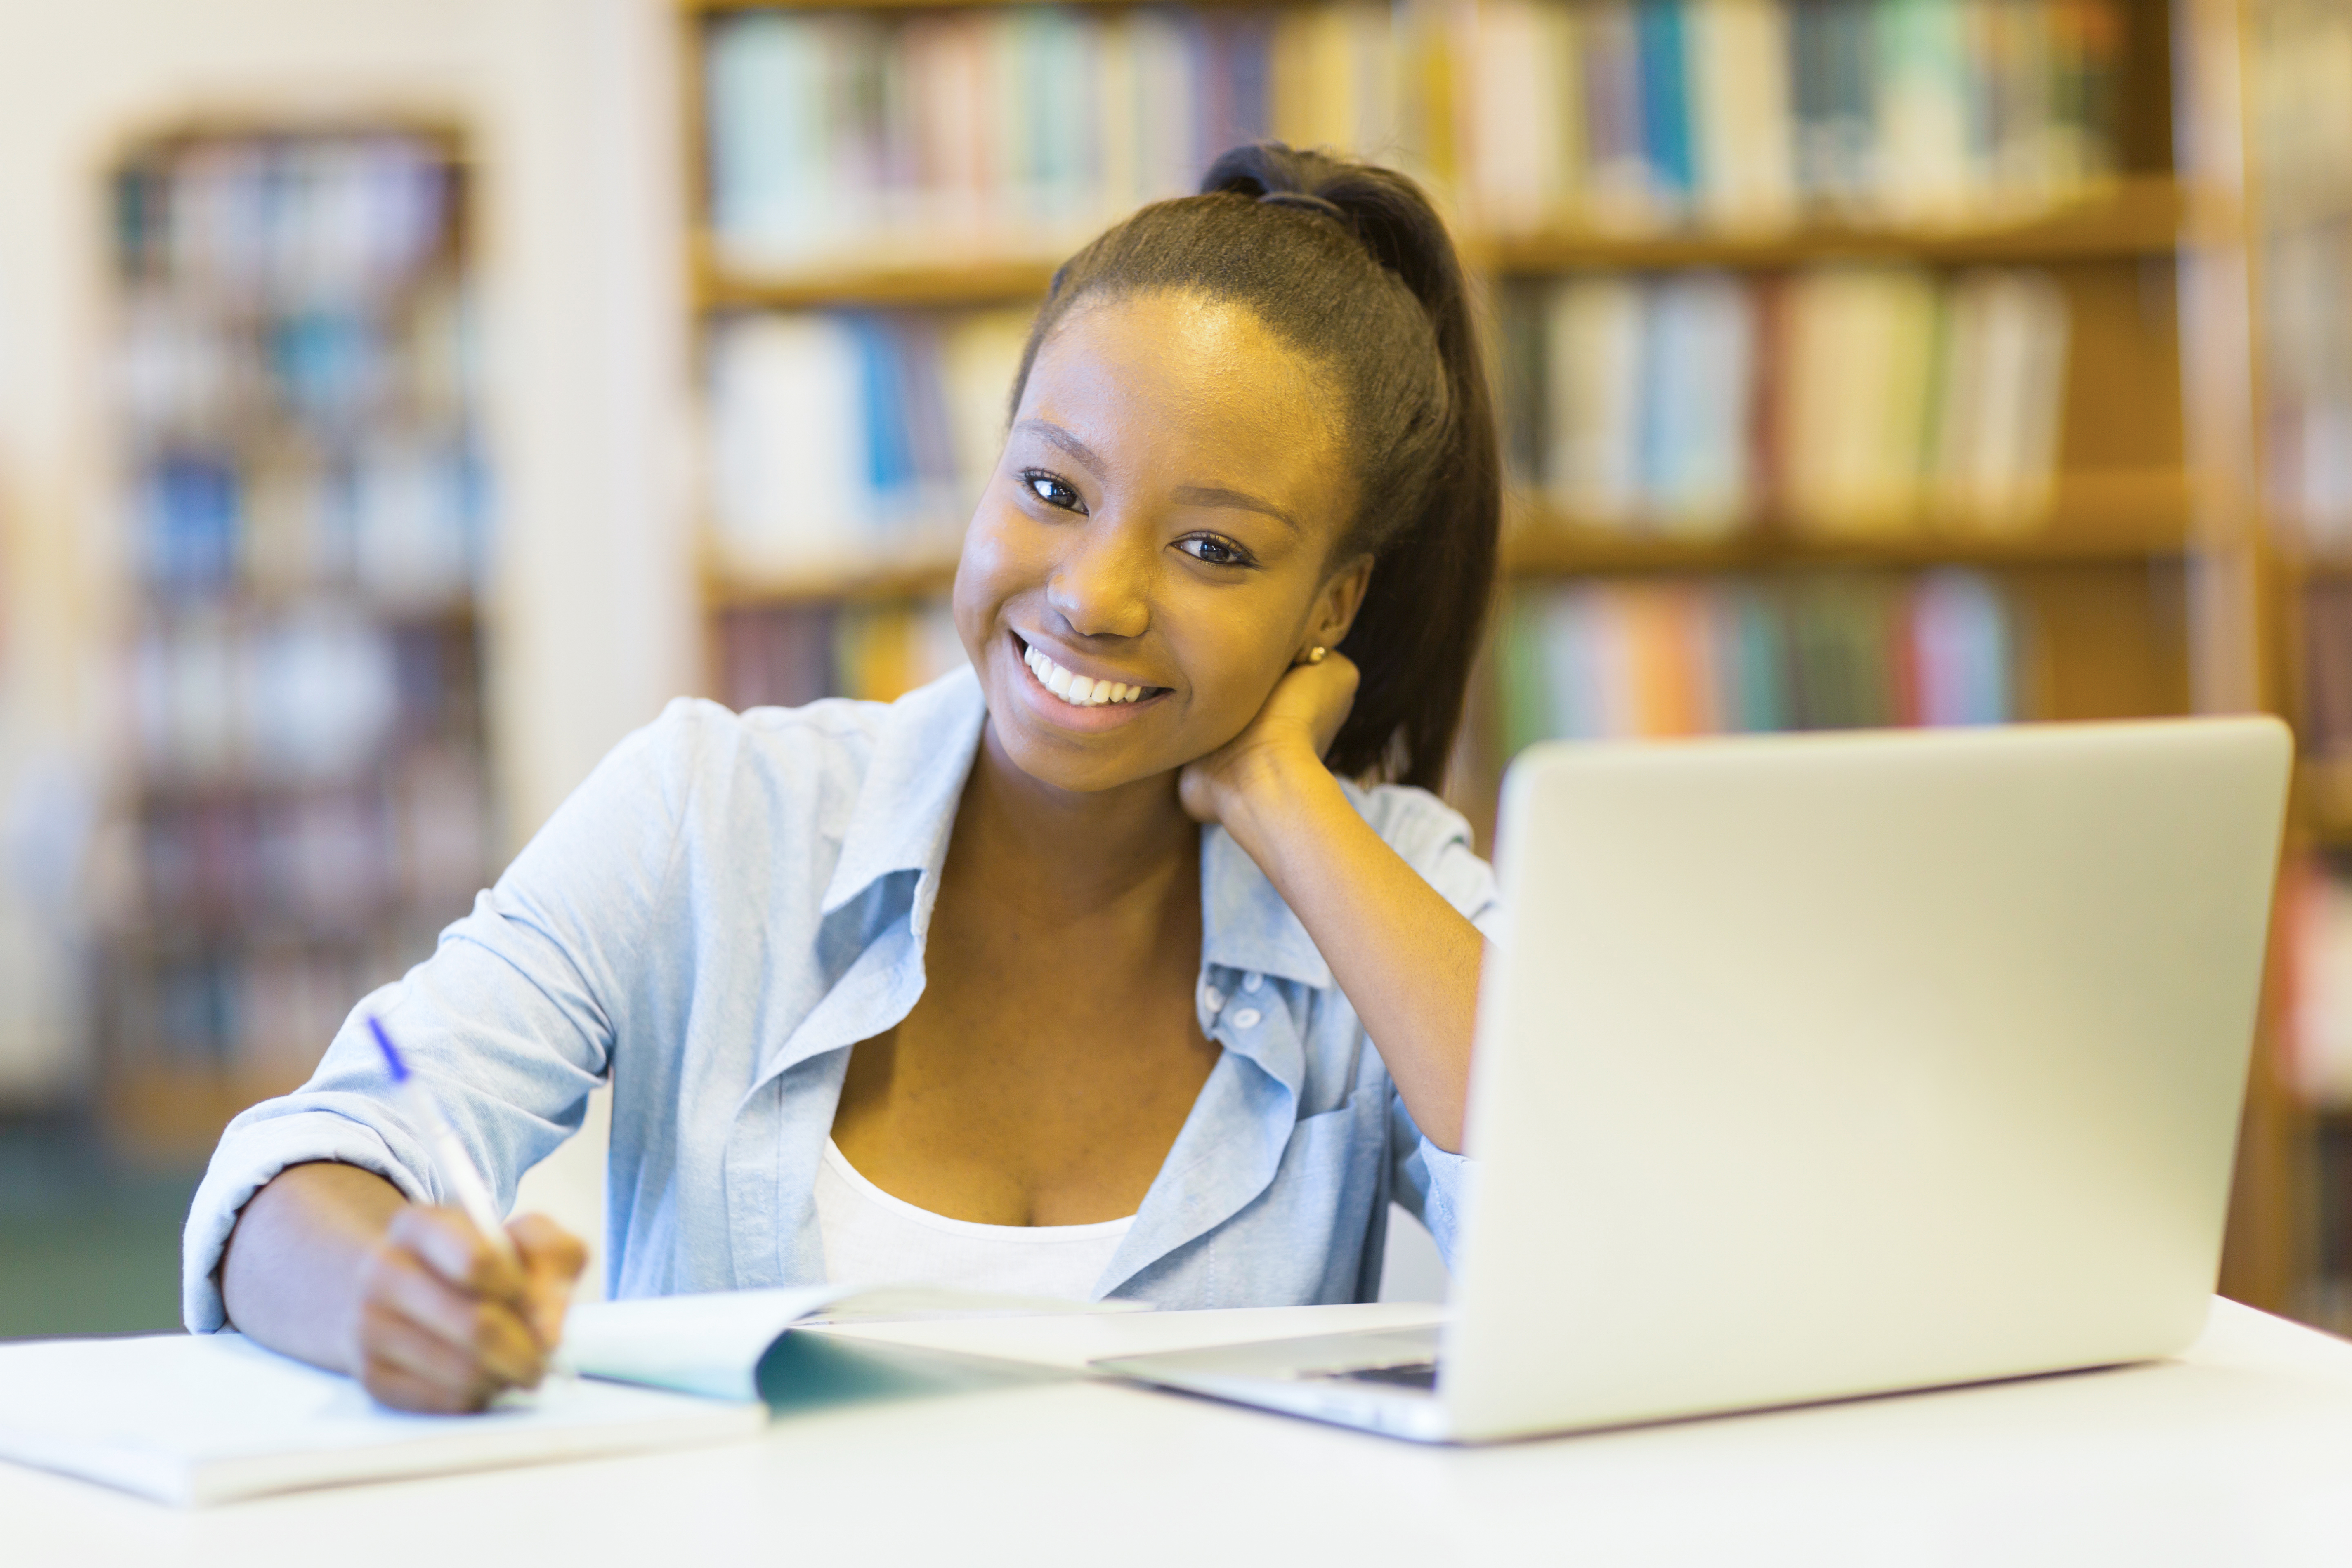 girl with ponytail smiling and writing in a notebook in front of a laptop she's smart and doesn't have to worry about exams